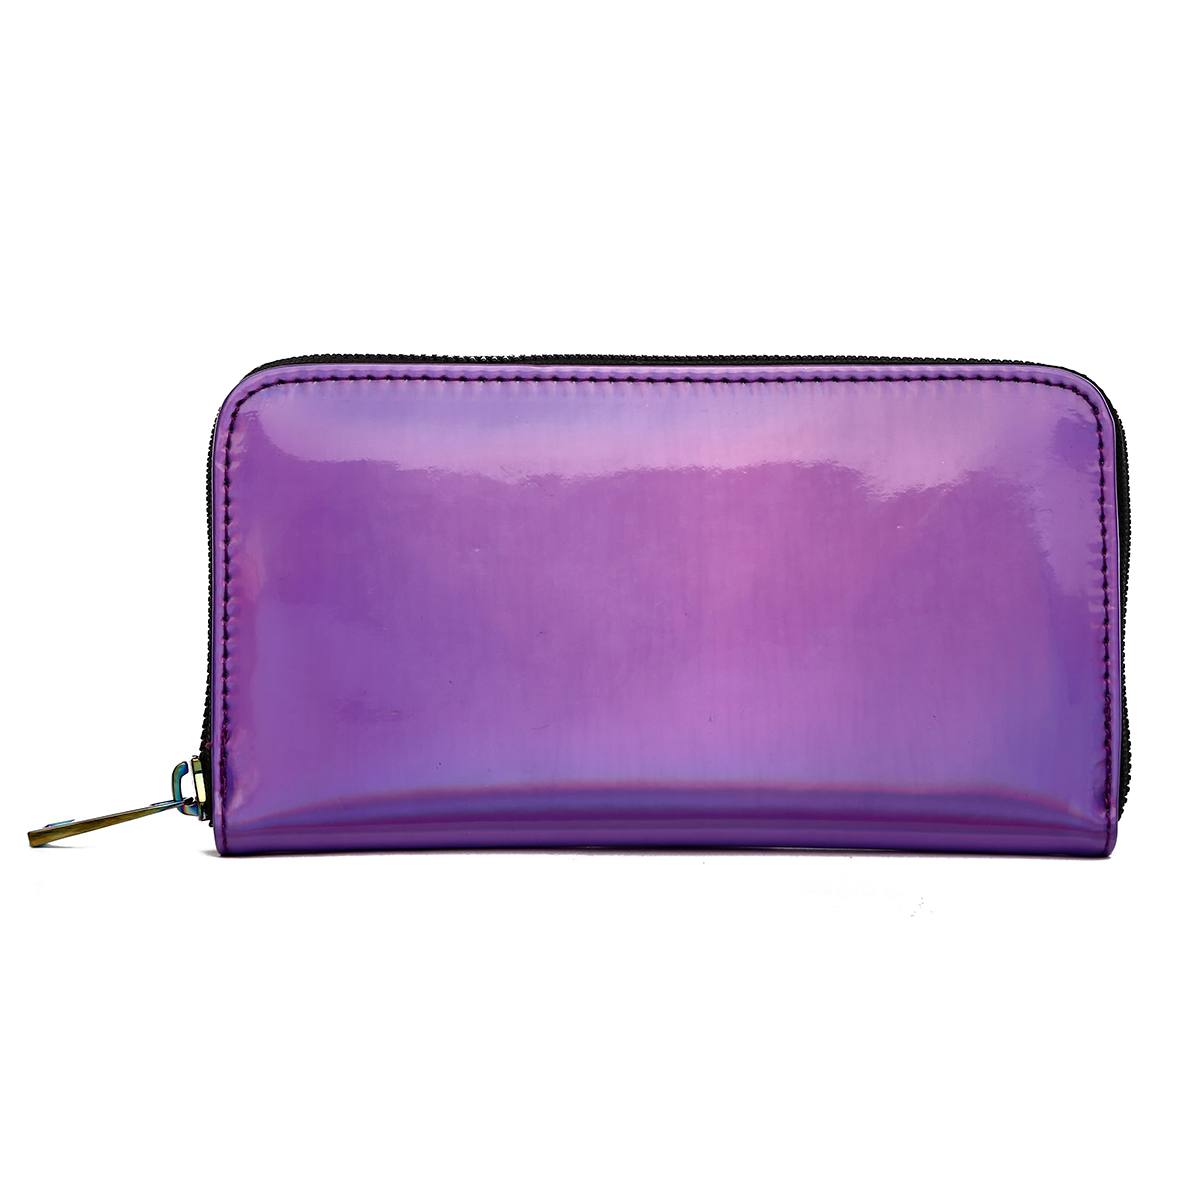 Hologram Zip Around Wallet with Rainbow Zipper Purple